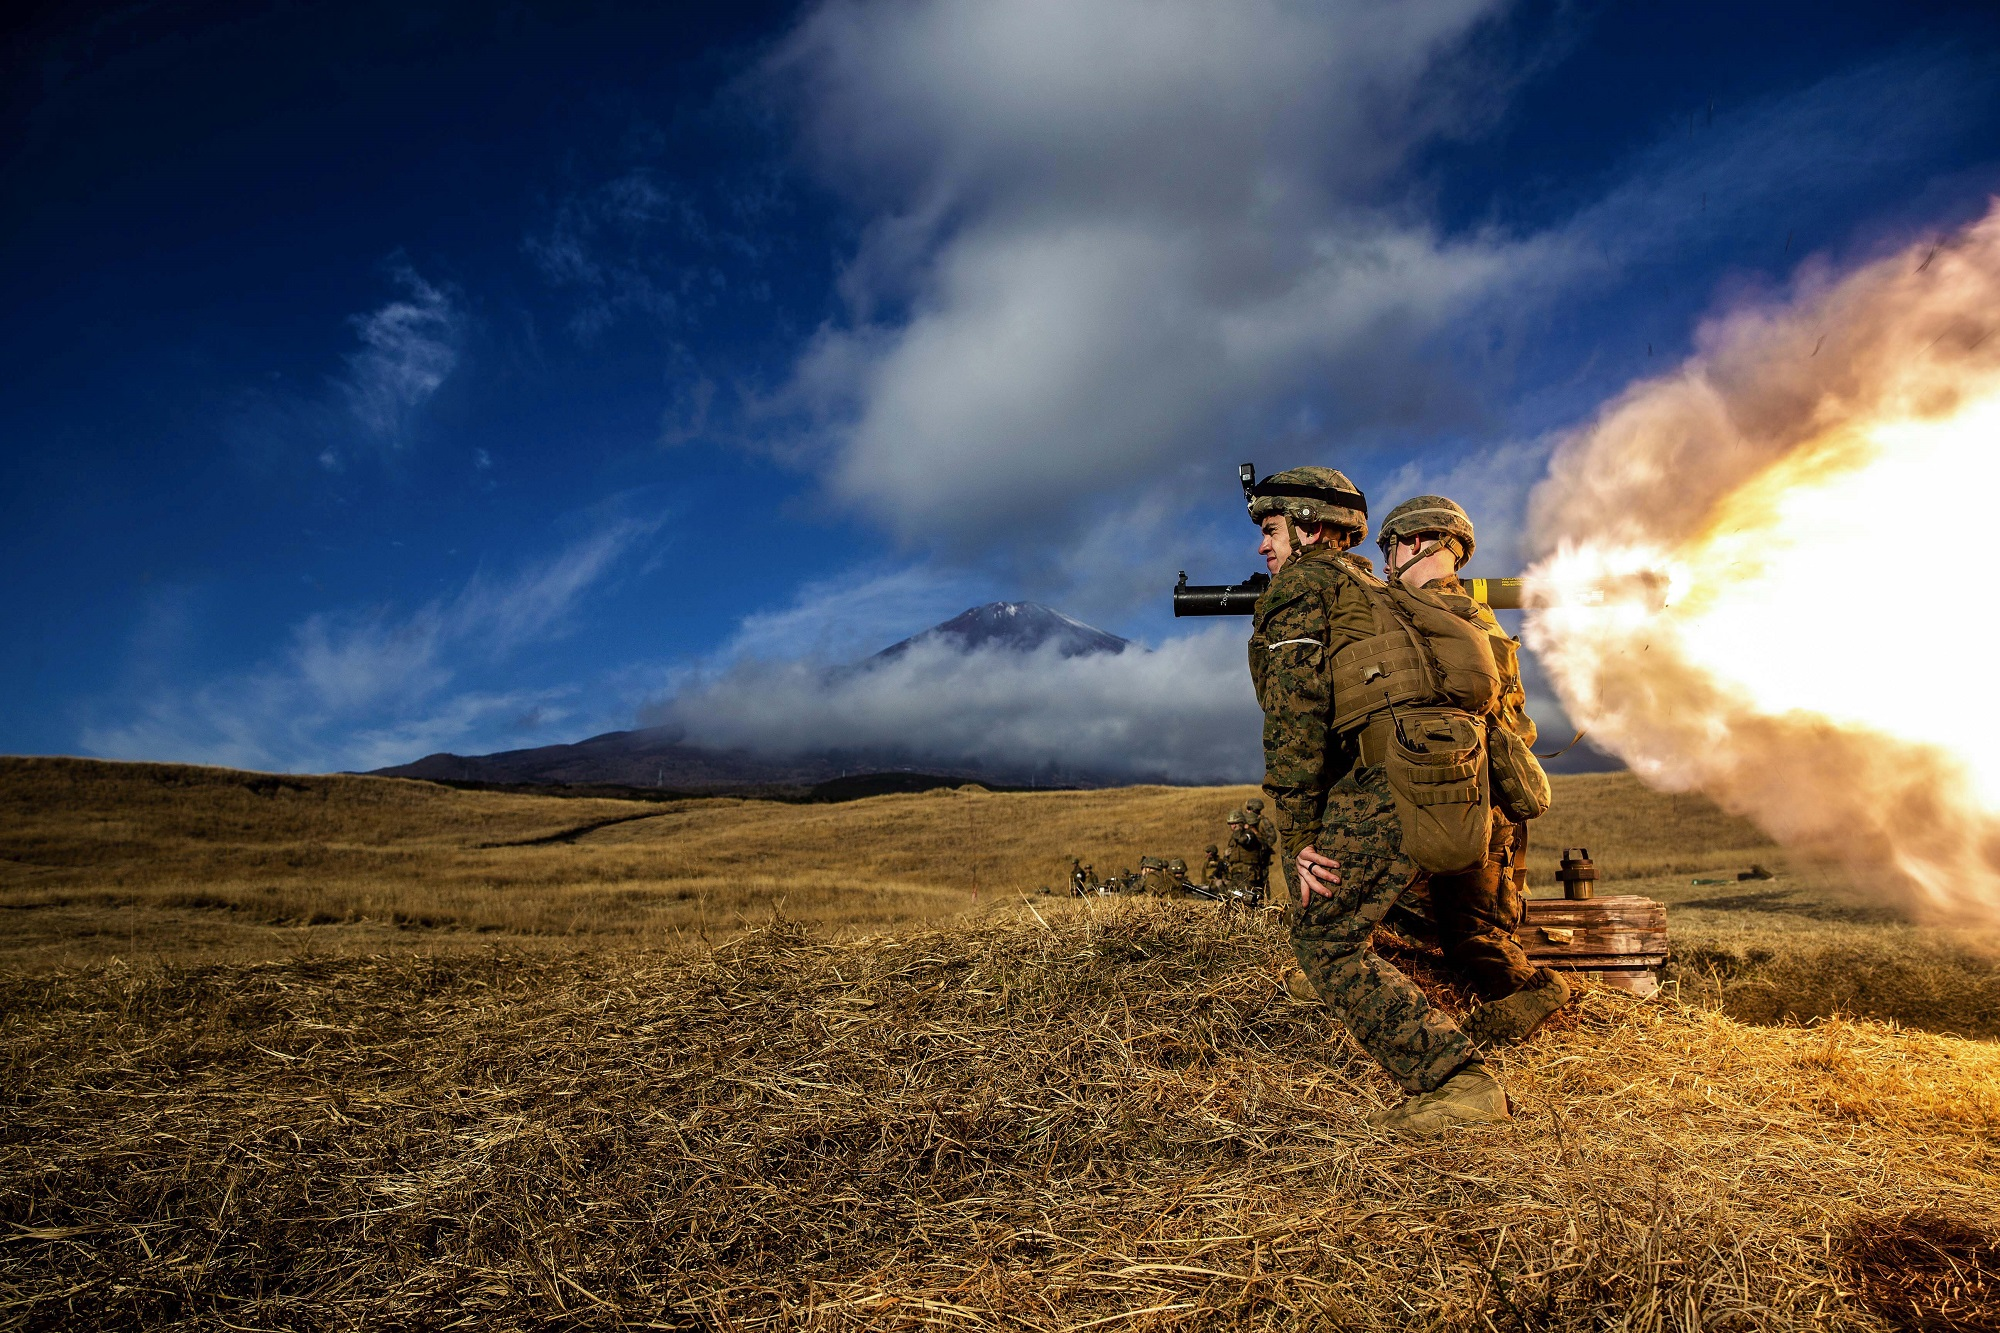 Marines fire a MK-153 shoulder-launched multipurpose assault weapon in a live-fire squad attack range during exercise Fuji Viper 21.1 at Combined Arms Training Center, Camp Fuji, Japan, on Dec. 10, 2020. (Lance Cpl. Ujian Gosun/Marine Corps)